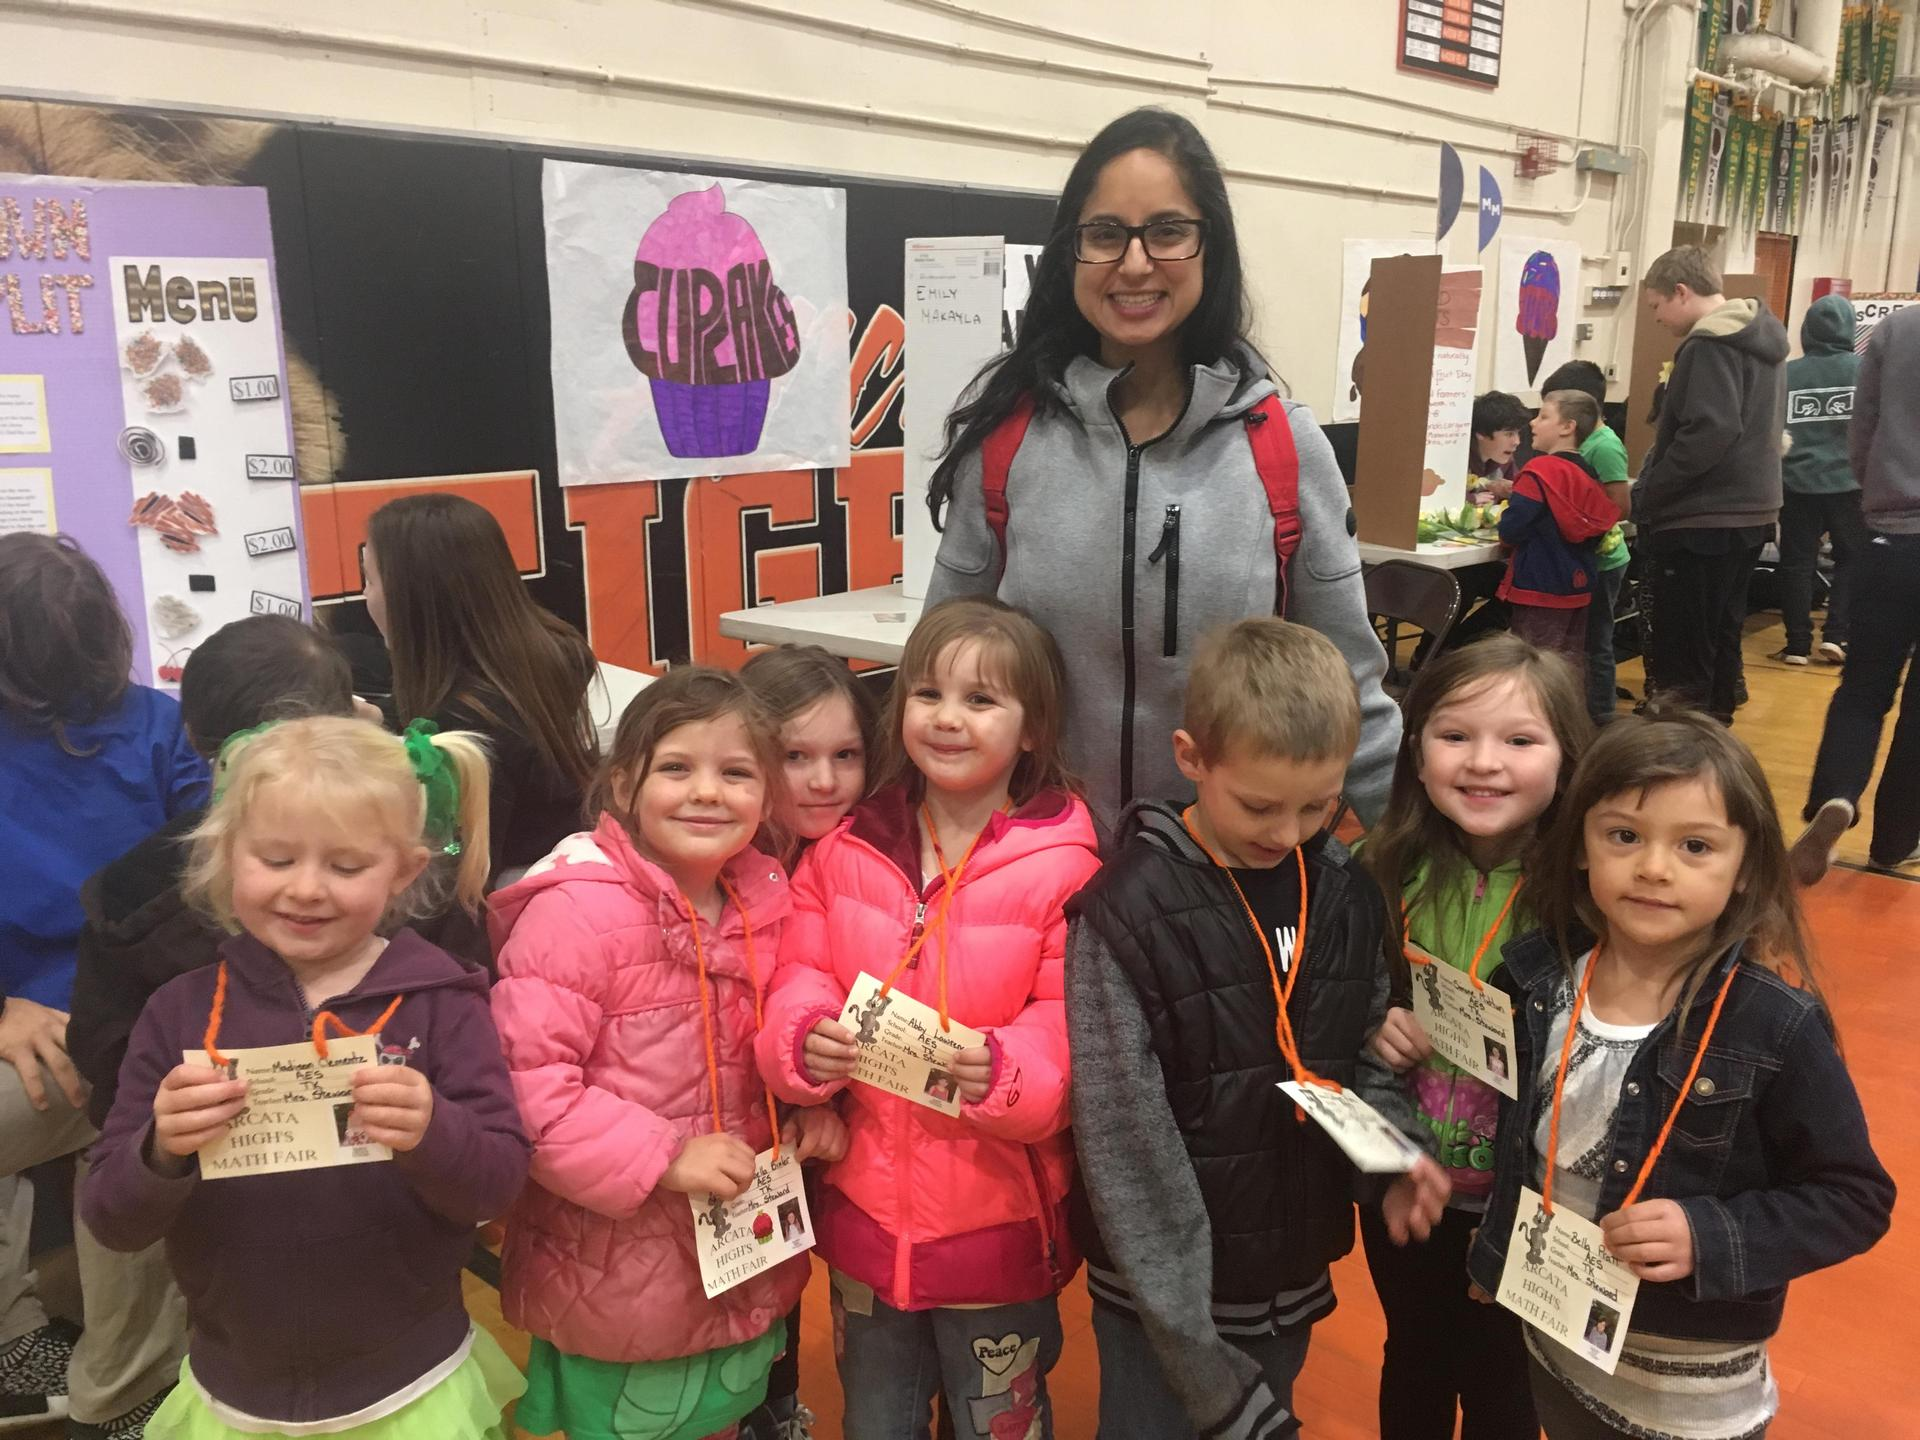 Students at Math Fair